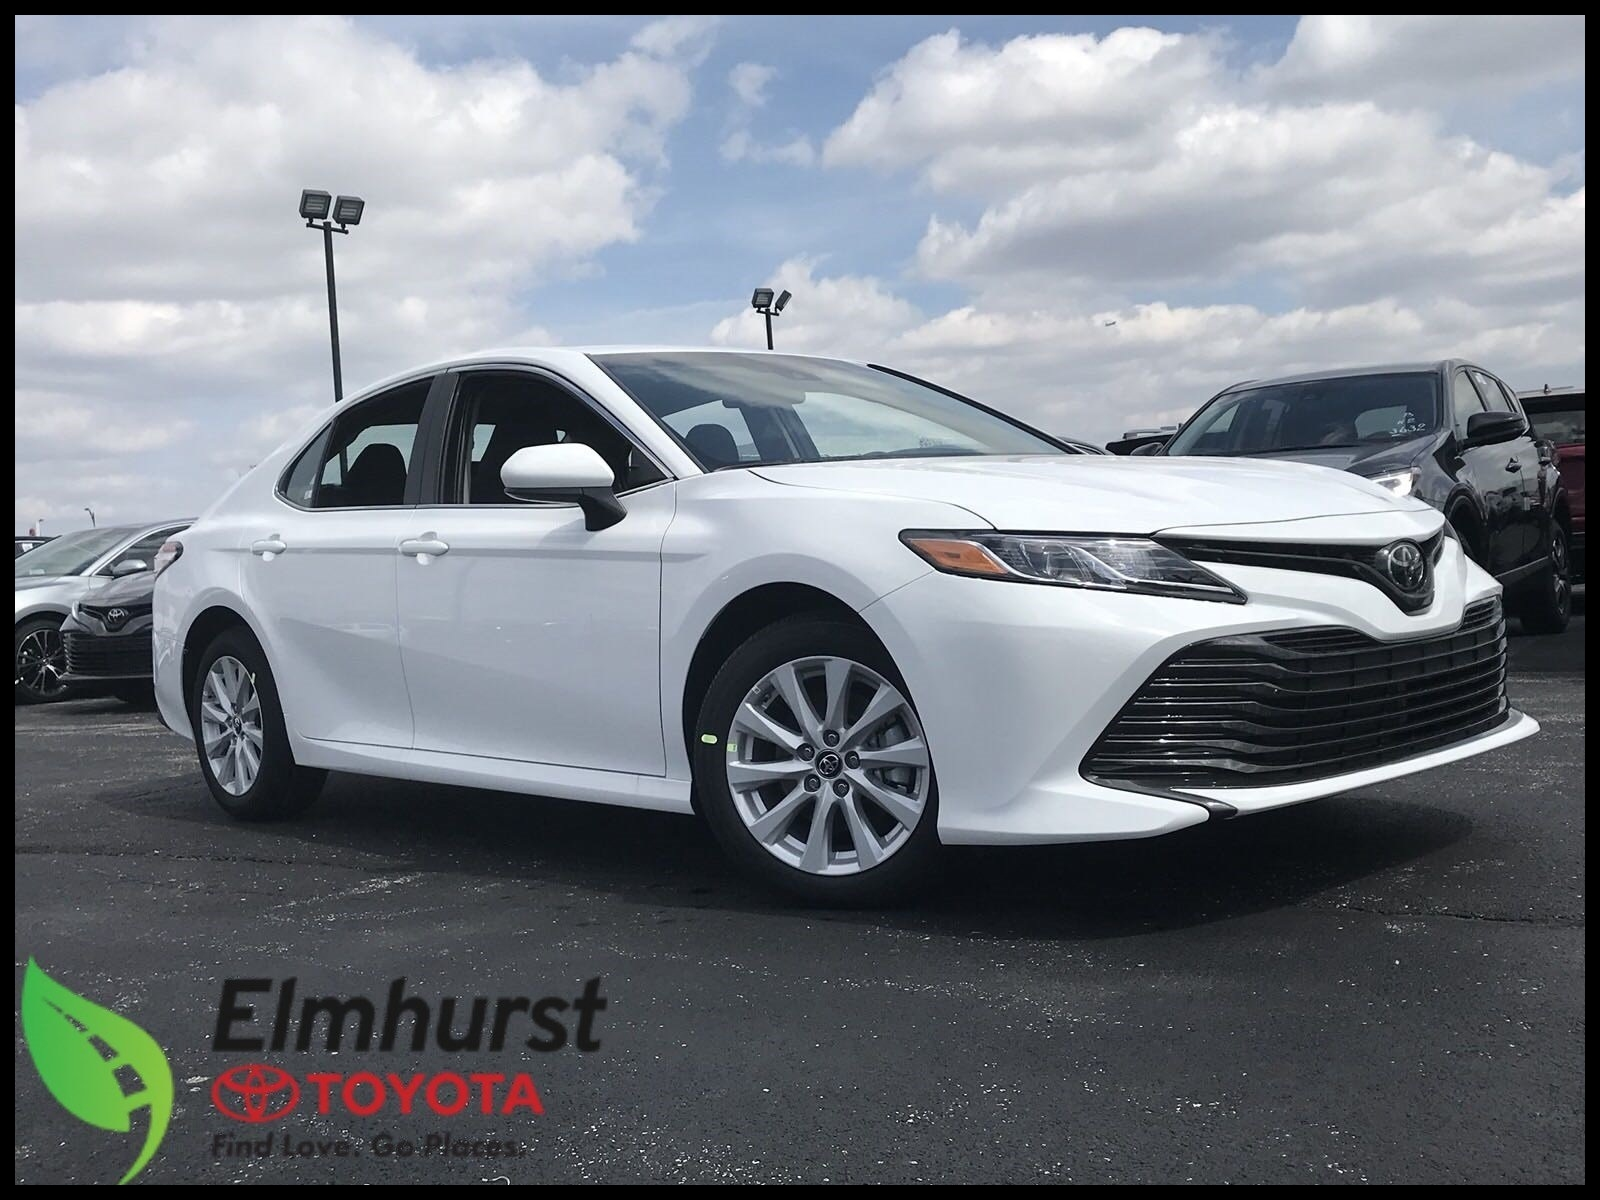 Hot 2018 Camry Pics toyota Camry 2018 Lovely 2018 toyota 0d Harvestinc Specs and Review